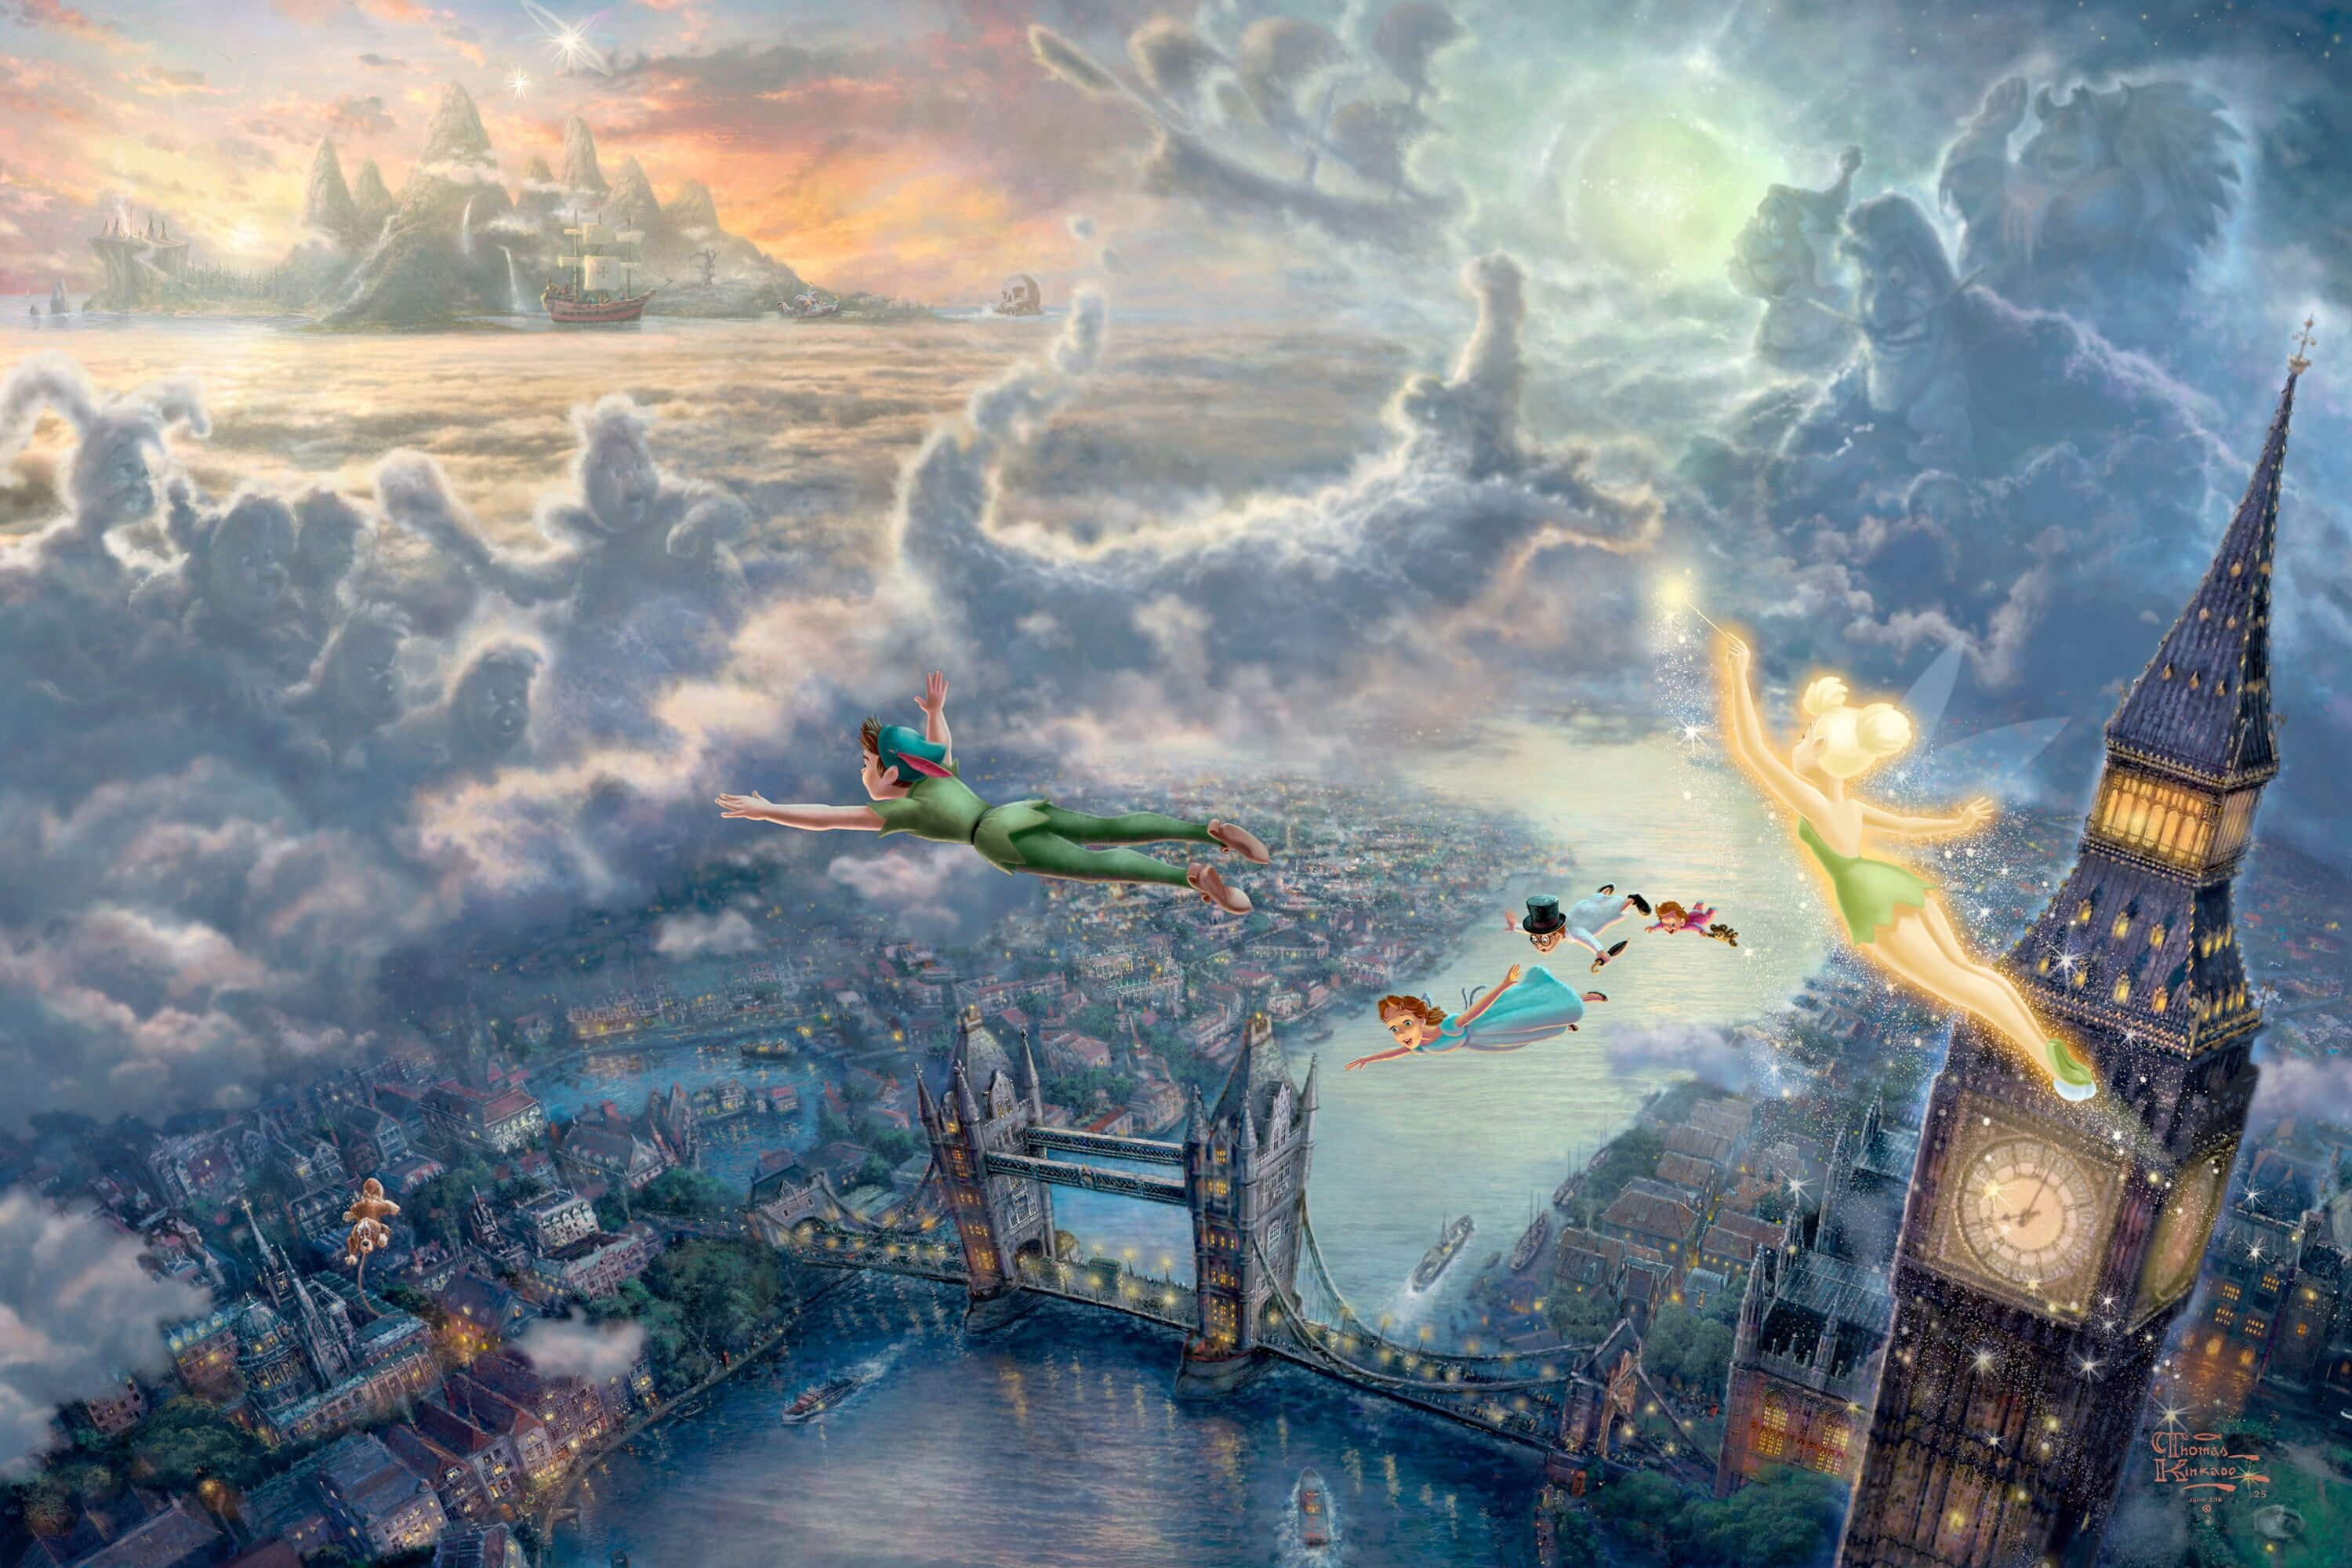 Peter Pan wallpaper #sea #clouds #sunset #bridge #children the city #lights #castle #watch #London #tale #ships #fairy #art #flight #fantasy Big Ben #sea #sunset #art #clouds Thomas Kinkade #London #fairytales Big Ben Thomas Kinkade #Disney 50-th anniversary captain Hook London bridge Peter Pan Tinker bell The Disney dreams collection #Wendy #Tinkerbell #Wendy Tinkerbell and Peter Pan fly to Neverland #2K #wallpaper #hdwallpaper #desktop